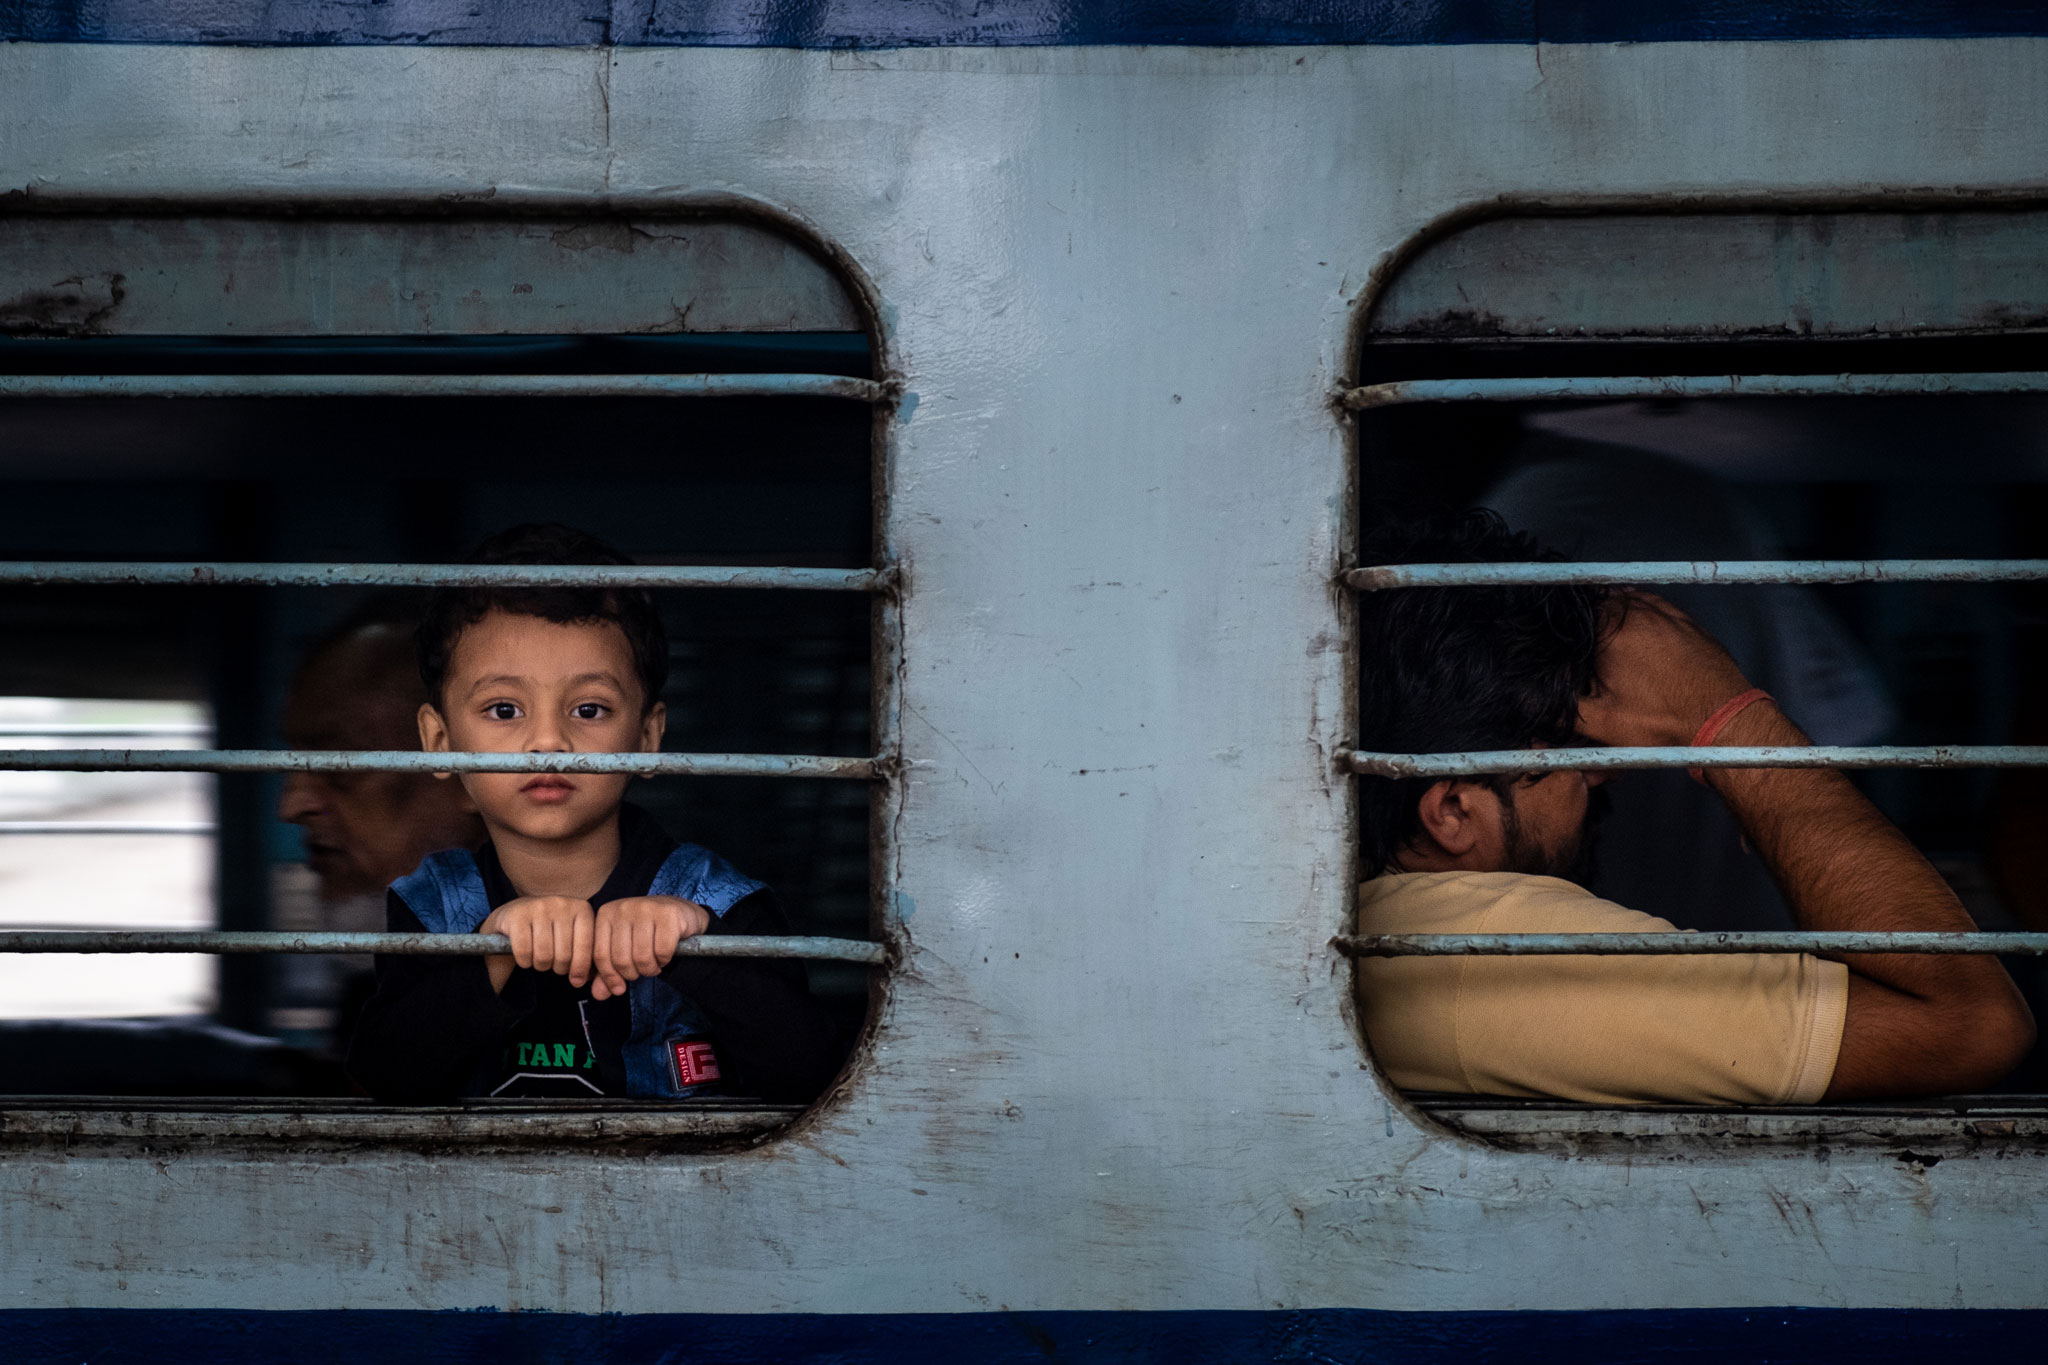 INDIAN BOY IN THE TRAIN